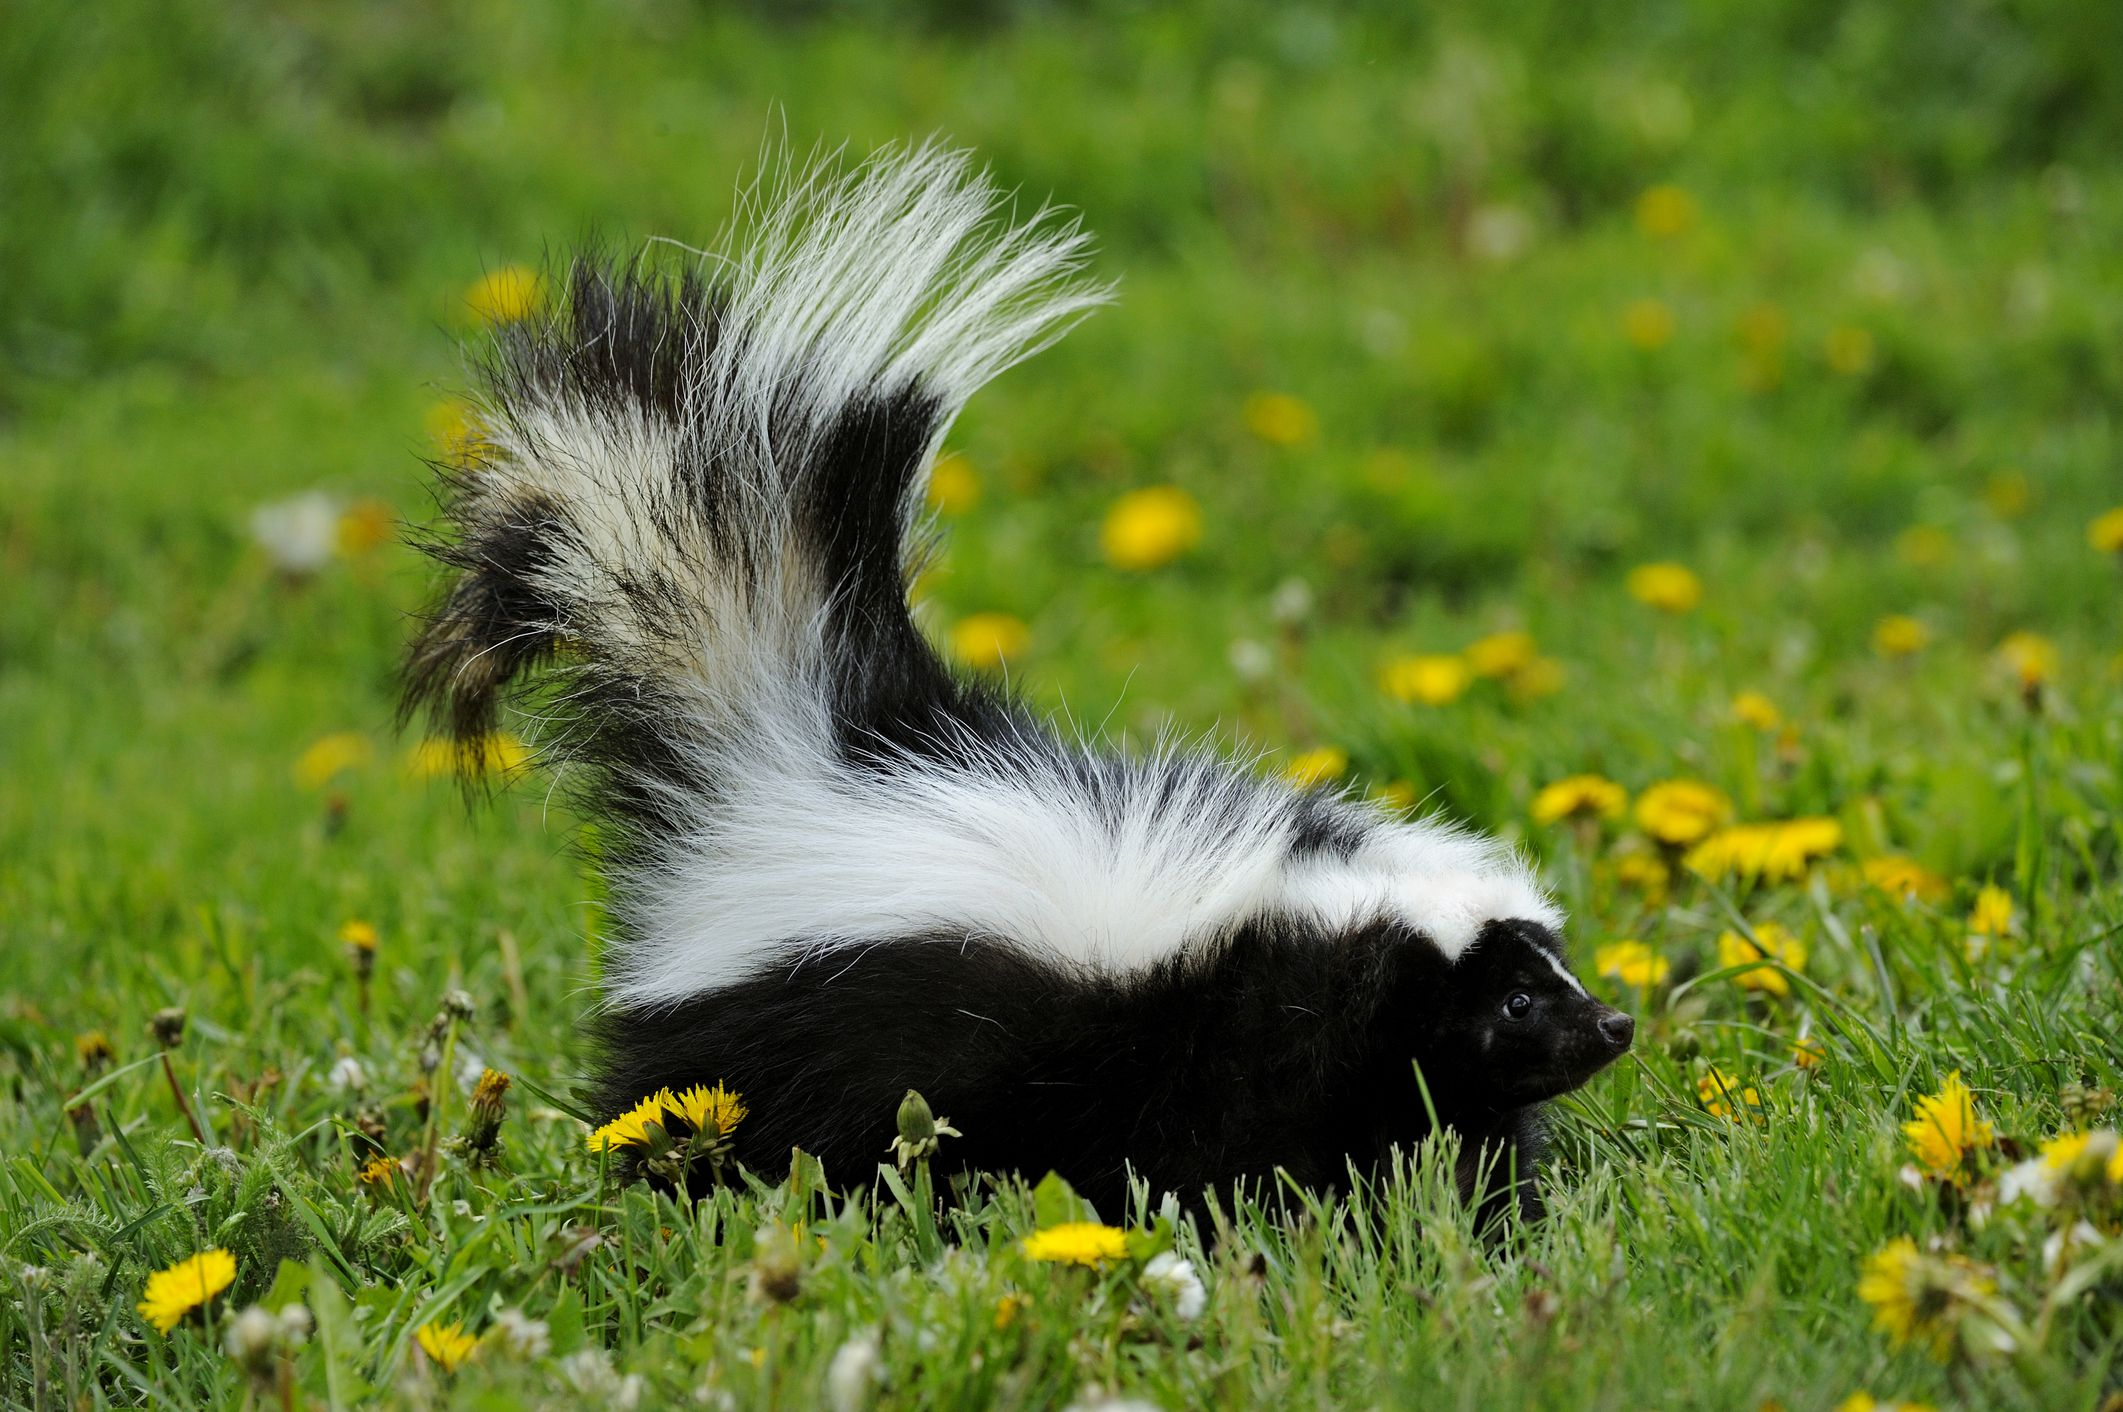 Oxiclean To Remove Skunk Odor